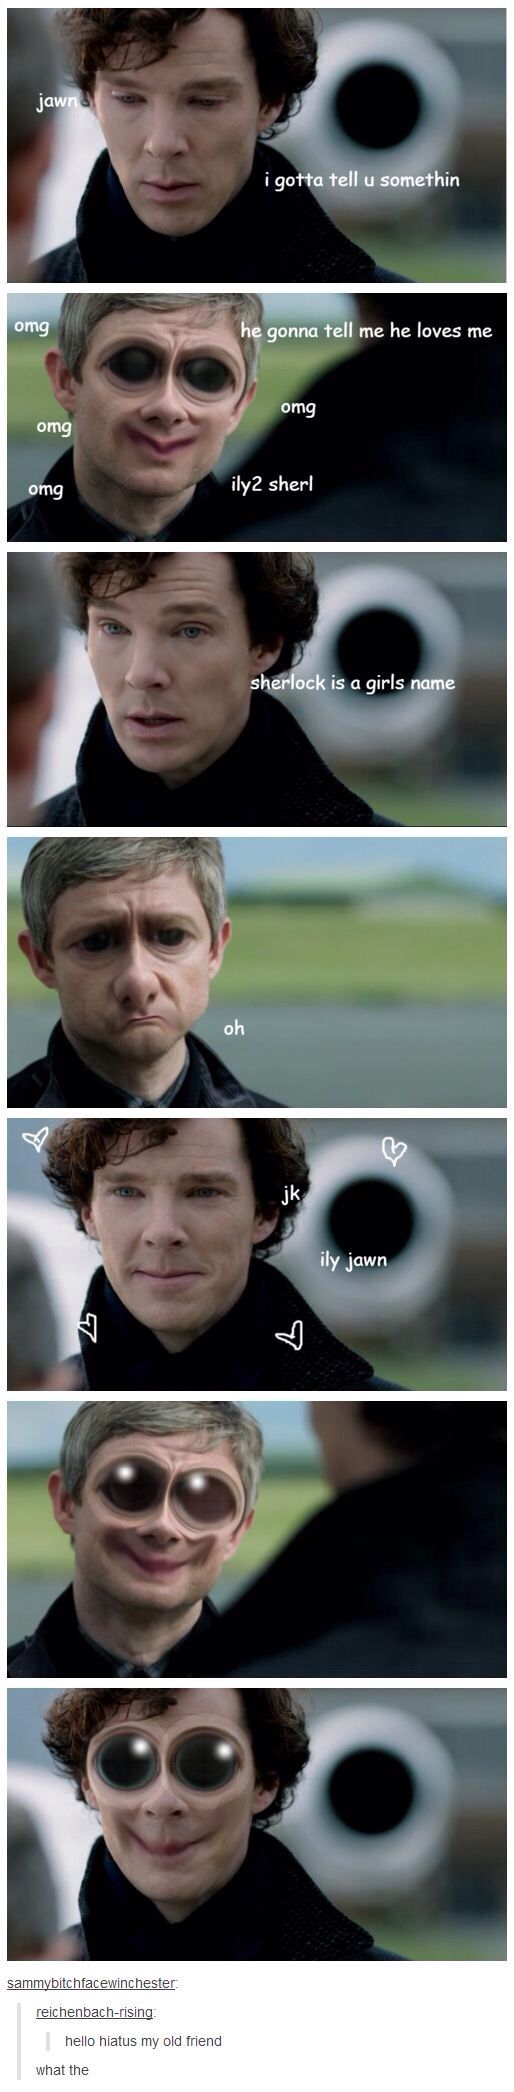 WHAT IS THIS<<< what the is about right . I can't stop laughing<<< this is how the evil god of hiatus, Mr Moffat, tortures minds